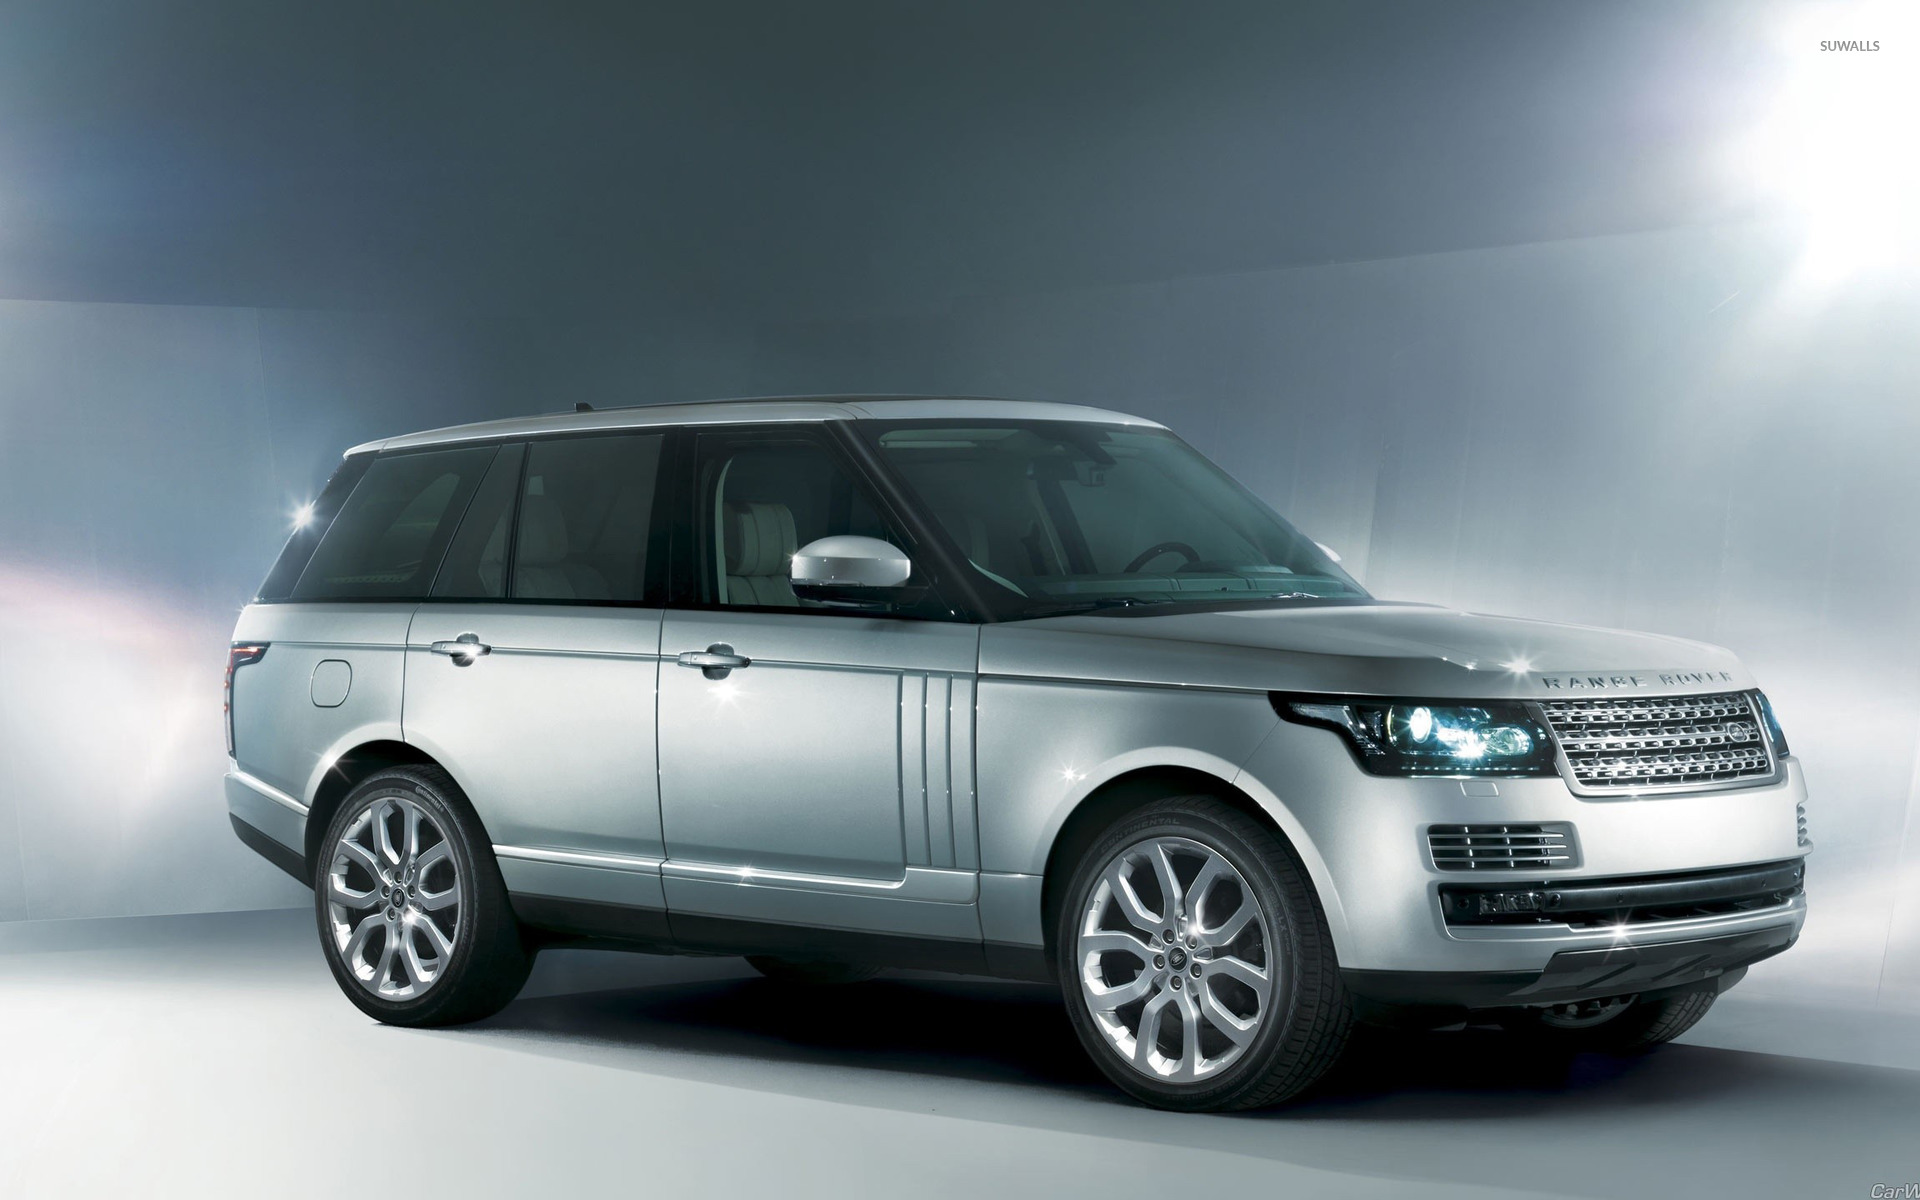 land rover range rover l405 wallpaper car wallpapers 18331. Black Bedroom Furniture Sets. Home Design Ideas